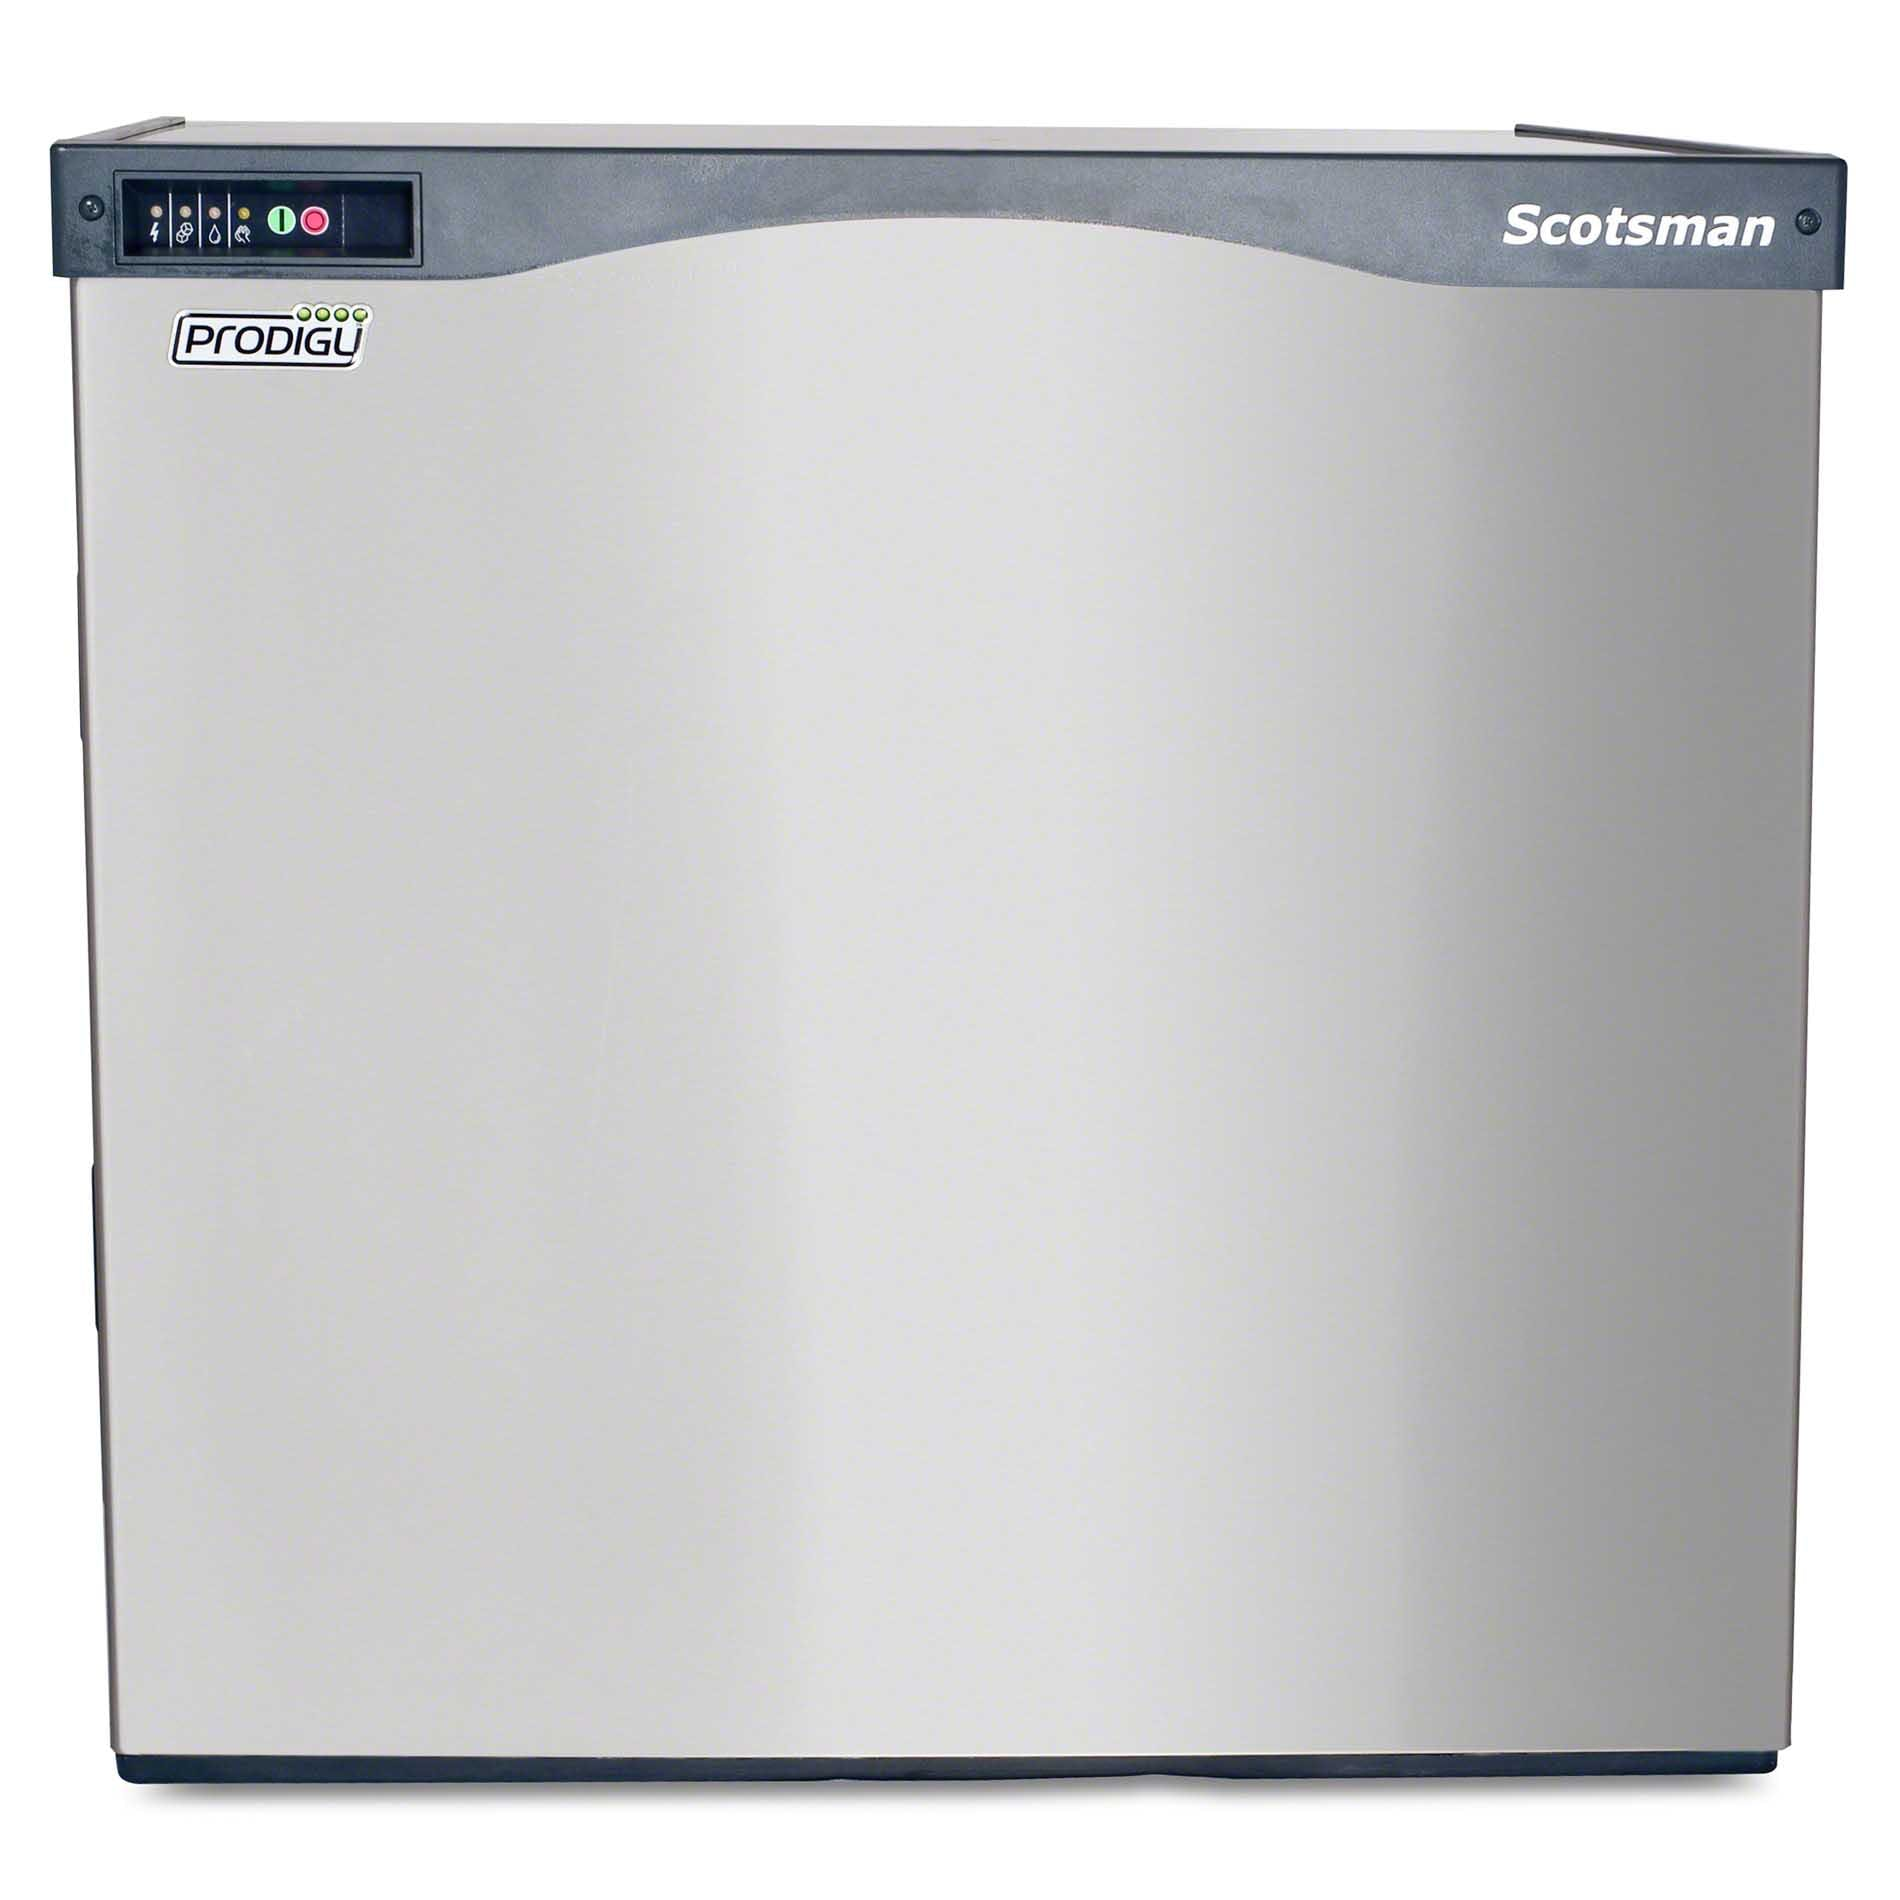 Scotsman - C1030SW-32A 1009 lb Half Size Cube Ice Machine - Prodigy Series - sold by Food Service Warehouse